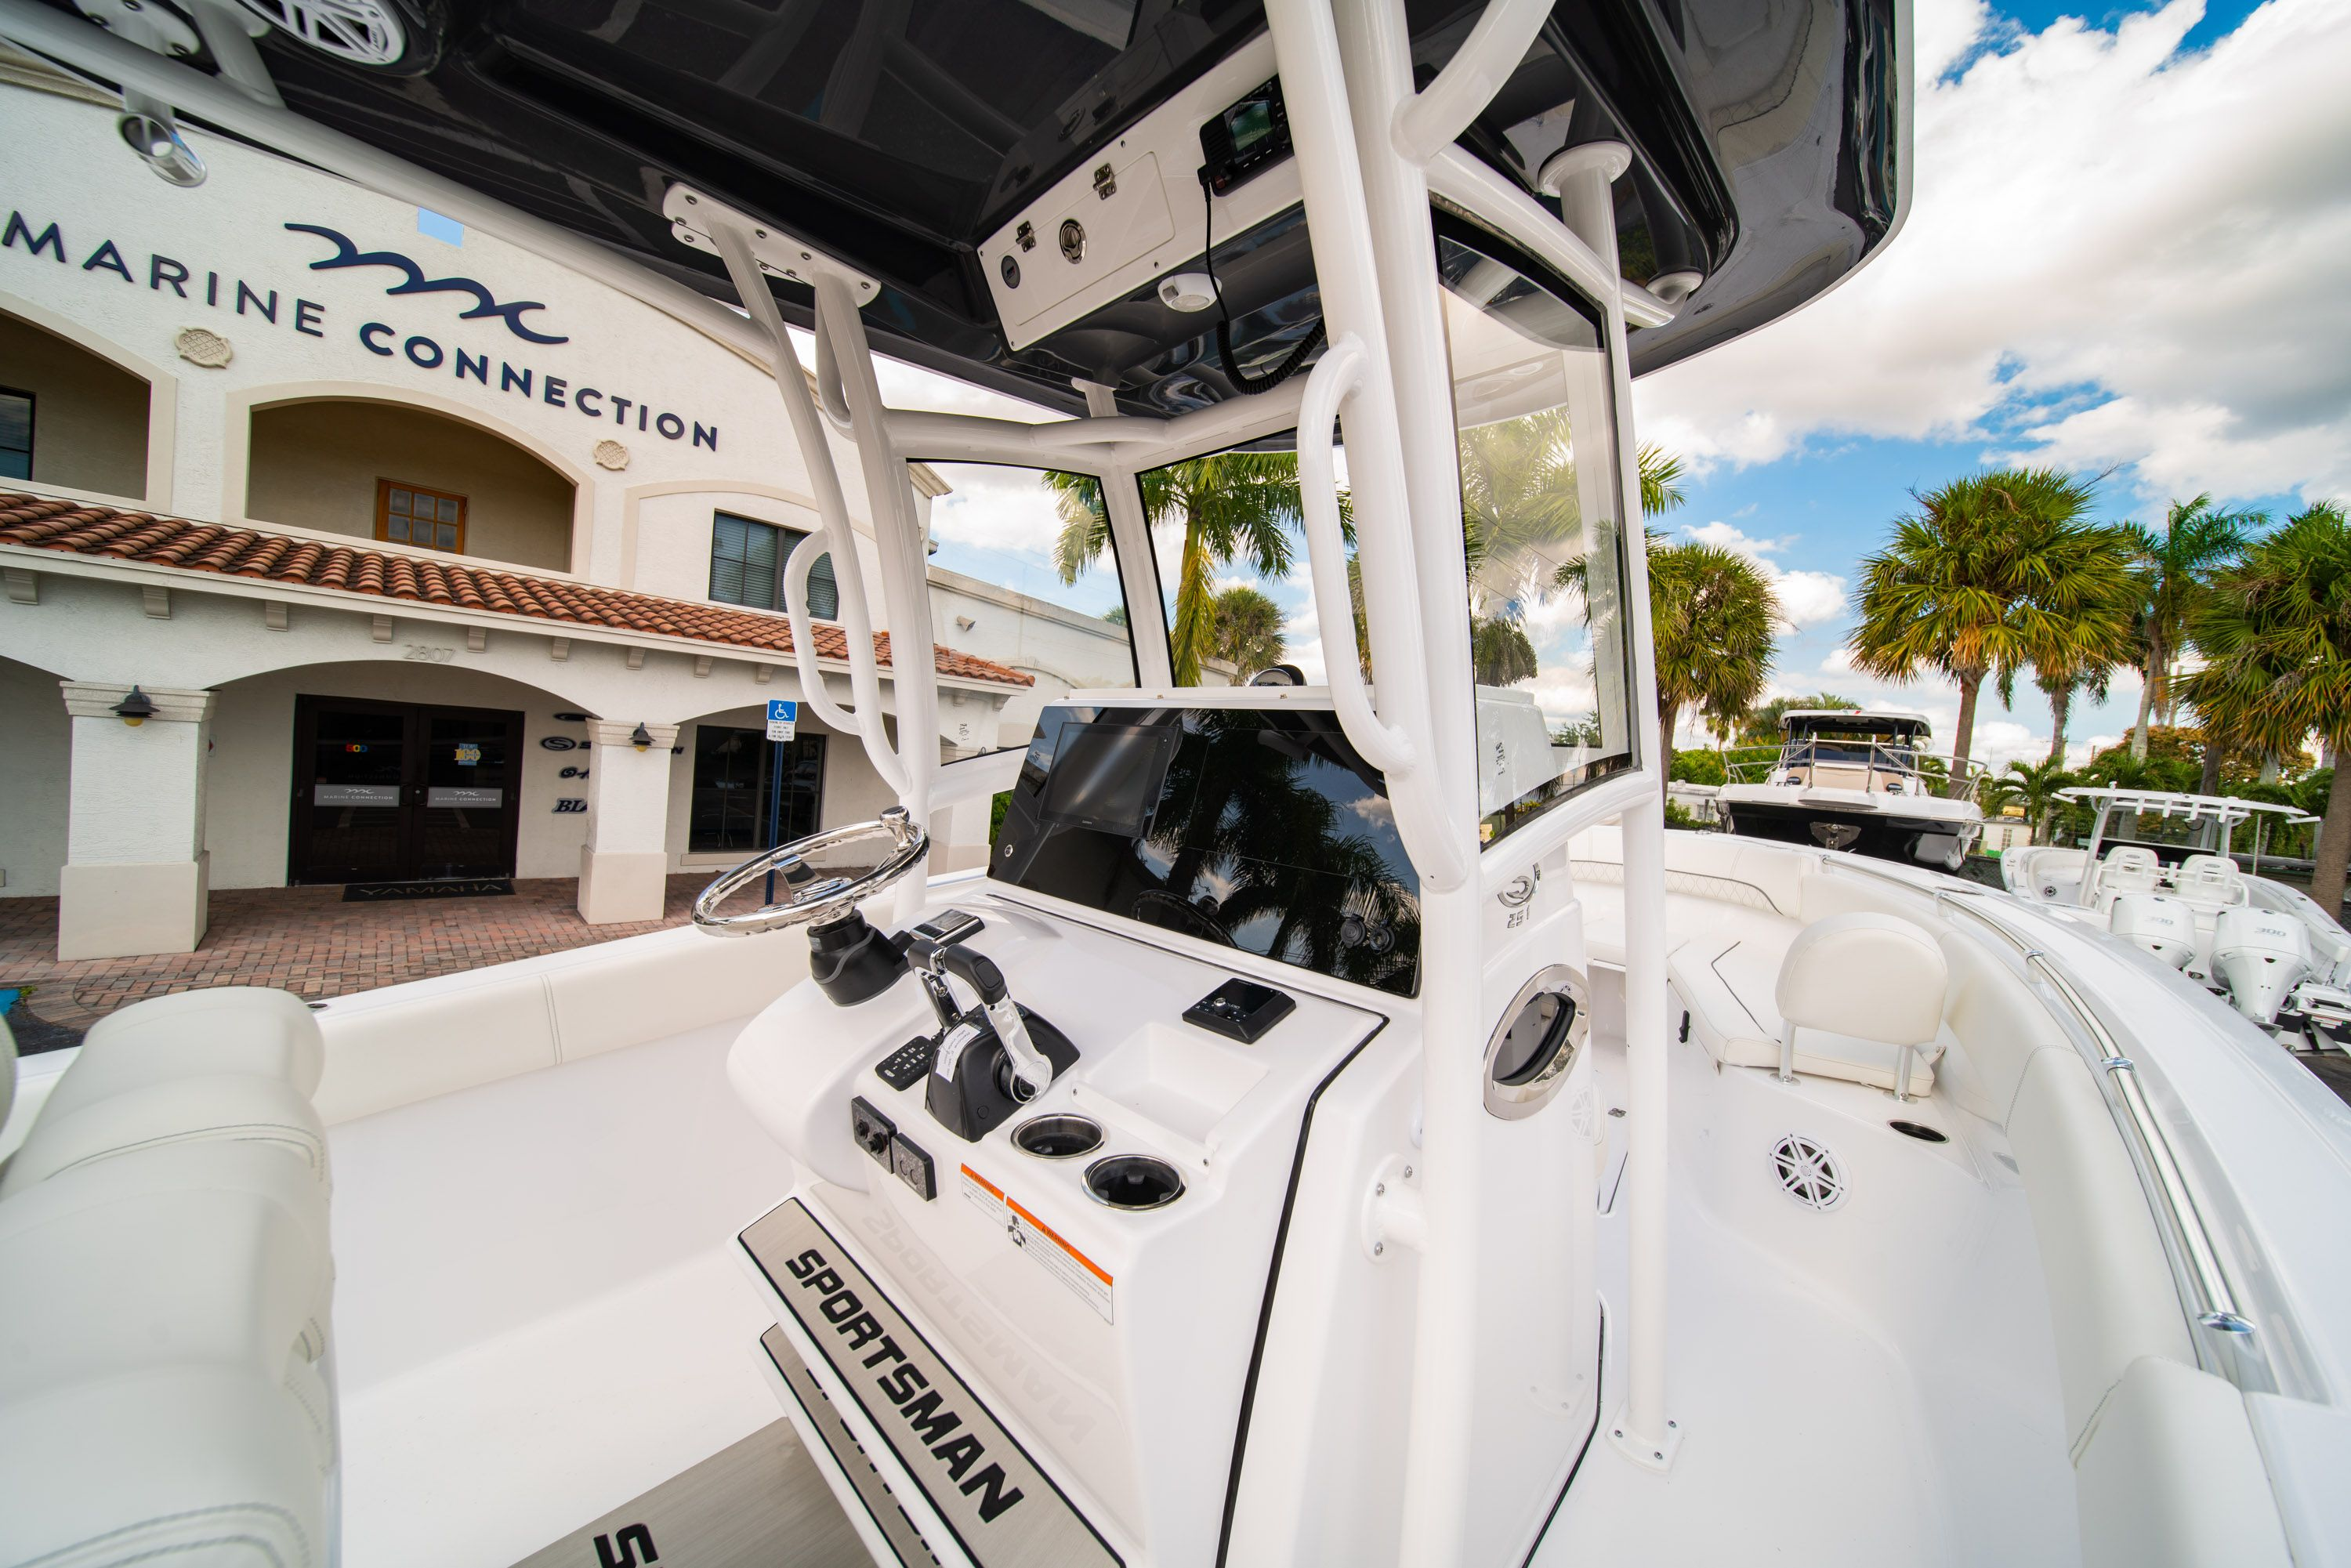 Thumbnail 25 for New 2020 Sportsman Heritage 251 Center Console boat for sale in West Palm Beach, FL